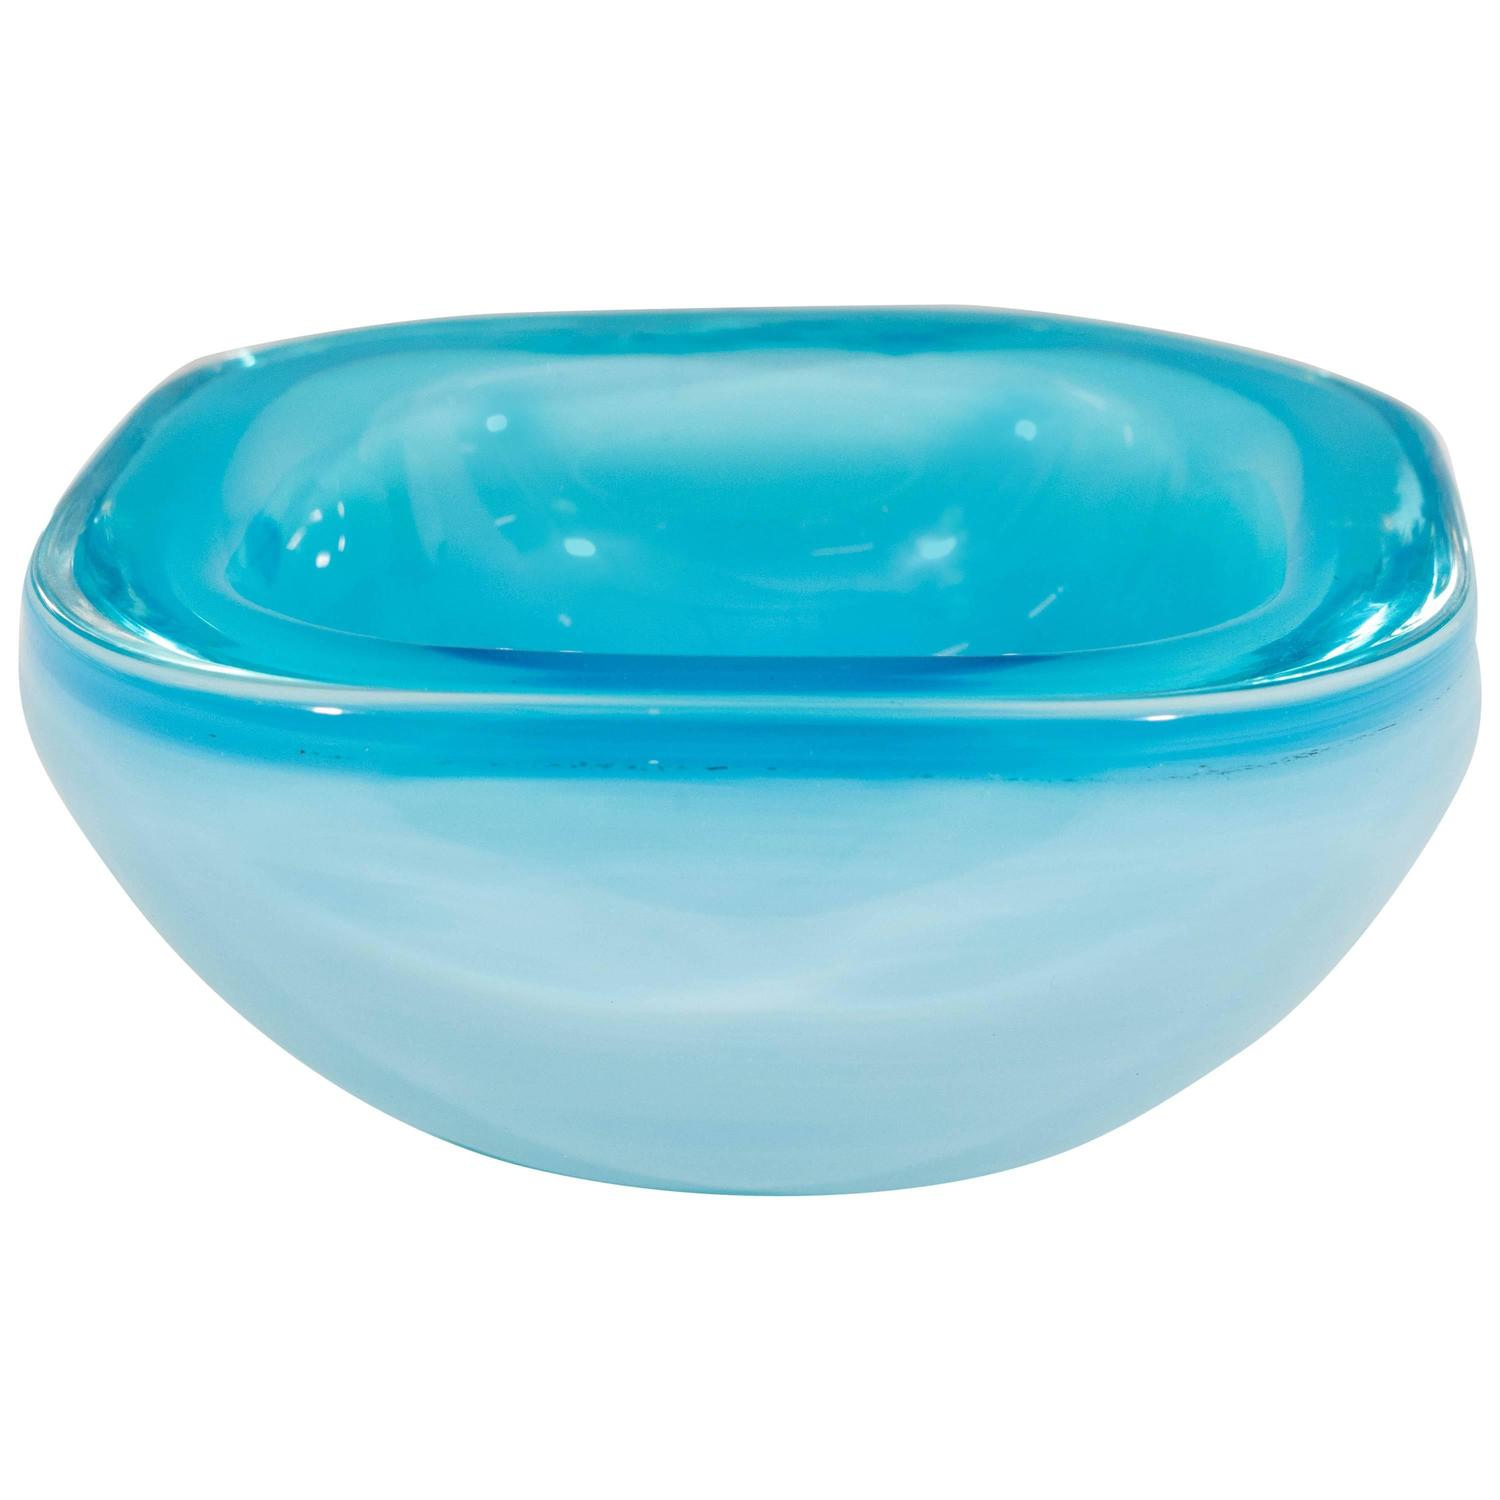 Blue Opaline Murano Glass Decorative Bowl At 1stdibs. Discontinued Kitchen Cabinets For Sale. Express Kitchens. Restaurant Style Kitchen Faucet. Japanese Kitchen El Paso. Home Depot Kitchens. Kitchen Aire. San Diego Hotels With Kitchens. Thai Kitchen Red Curry Paste